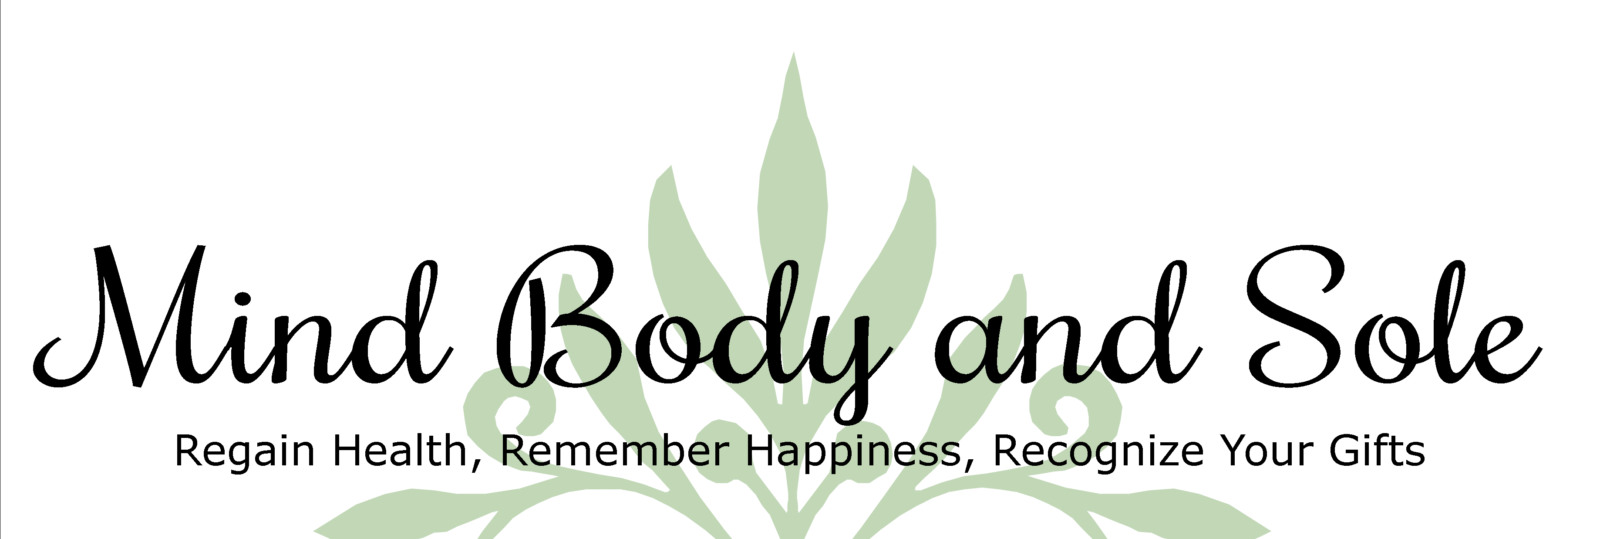 January Class Schedule - Mind Body and Sole